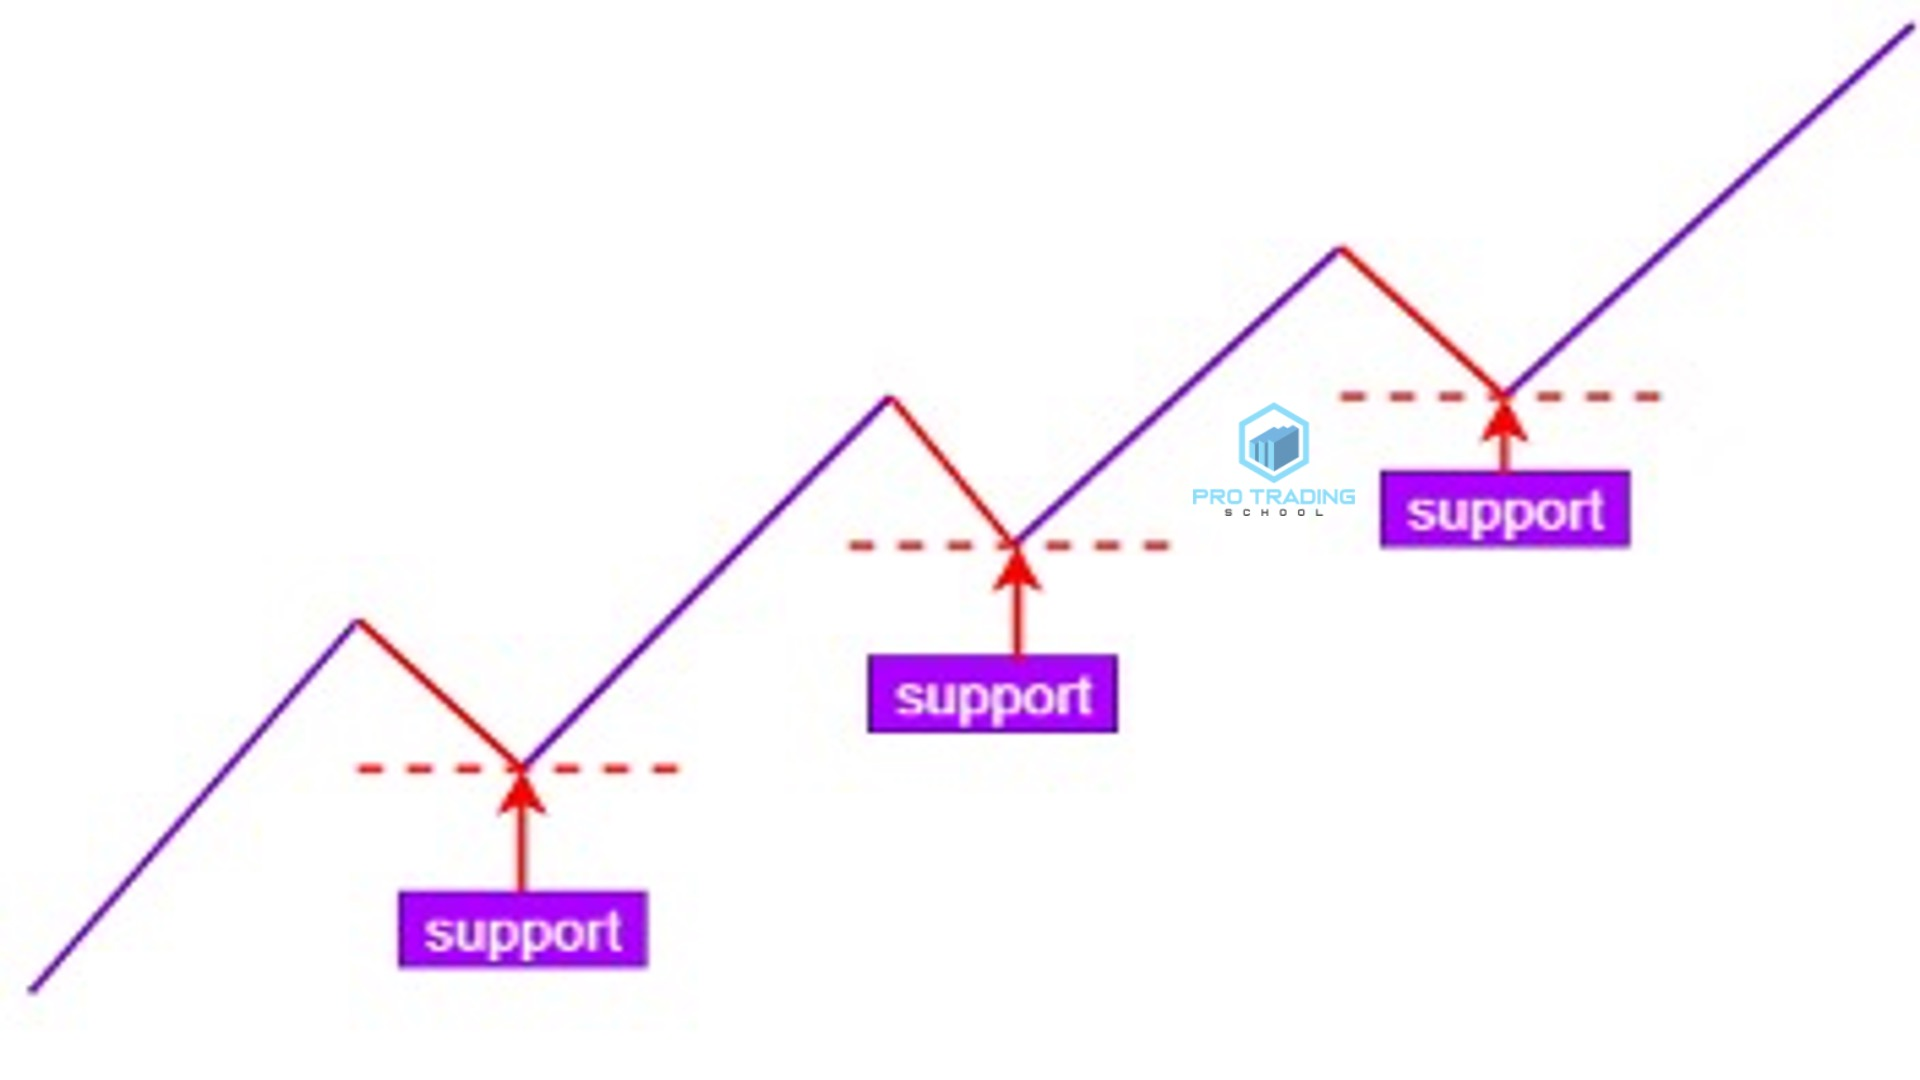 support-levels-with-false-breakout